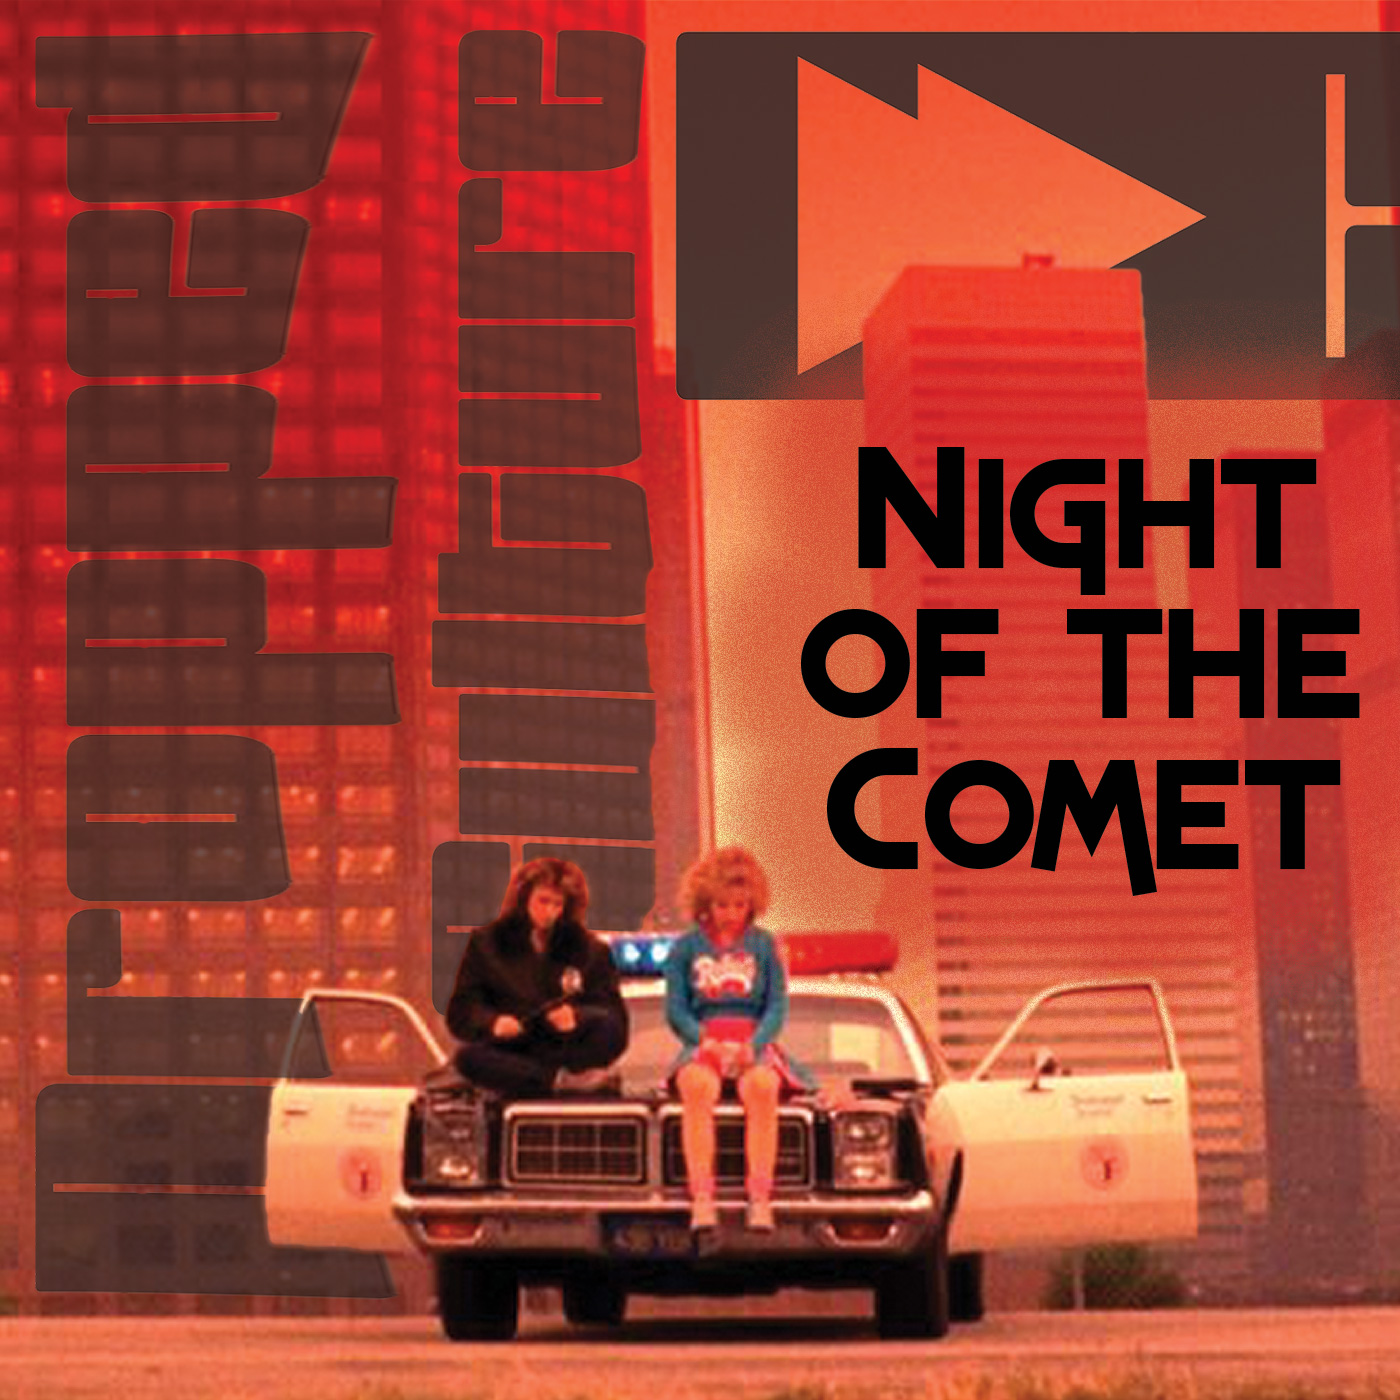 Dropped Culture Night of the Comet